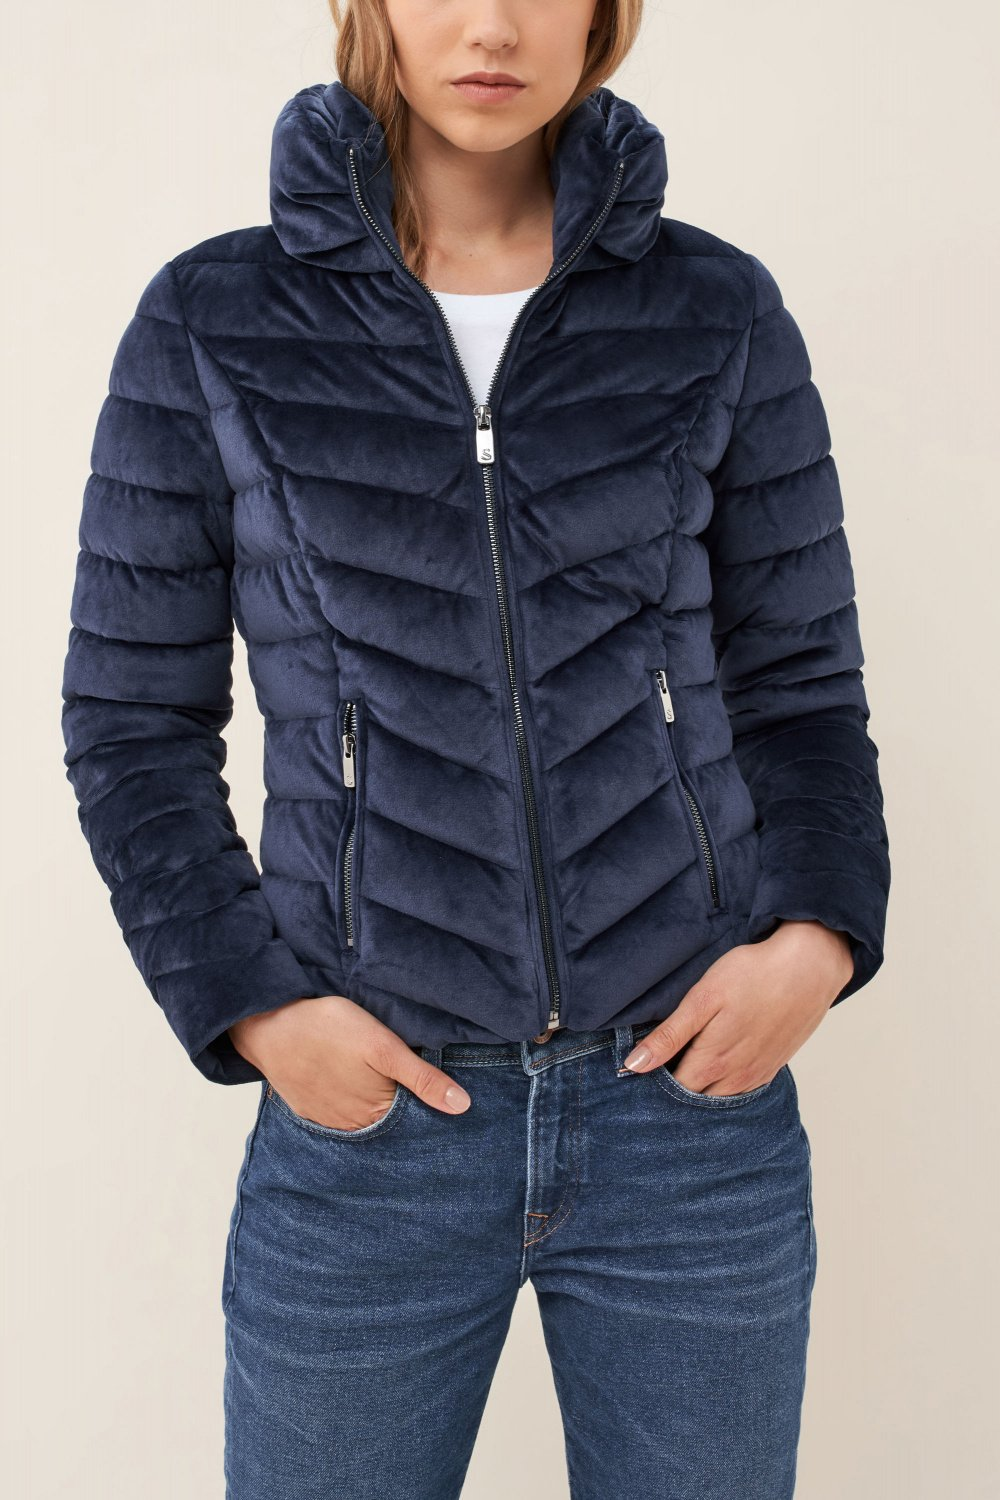 Padded jacket in velvet fabric - Salsa